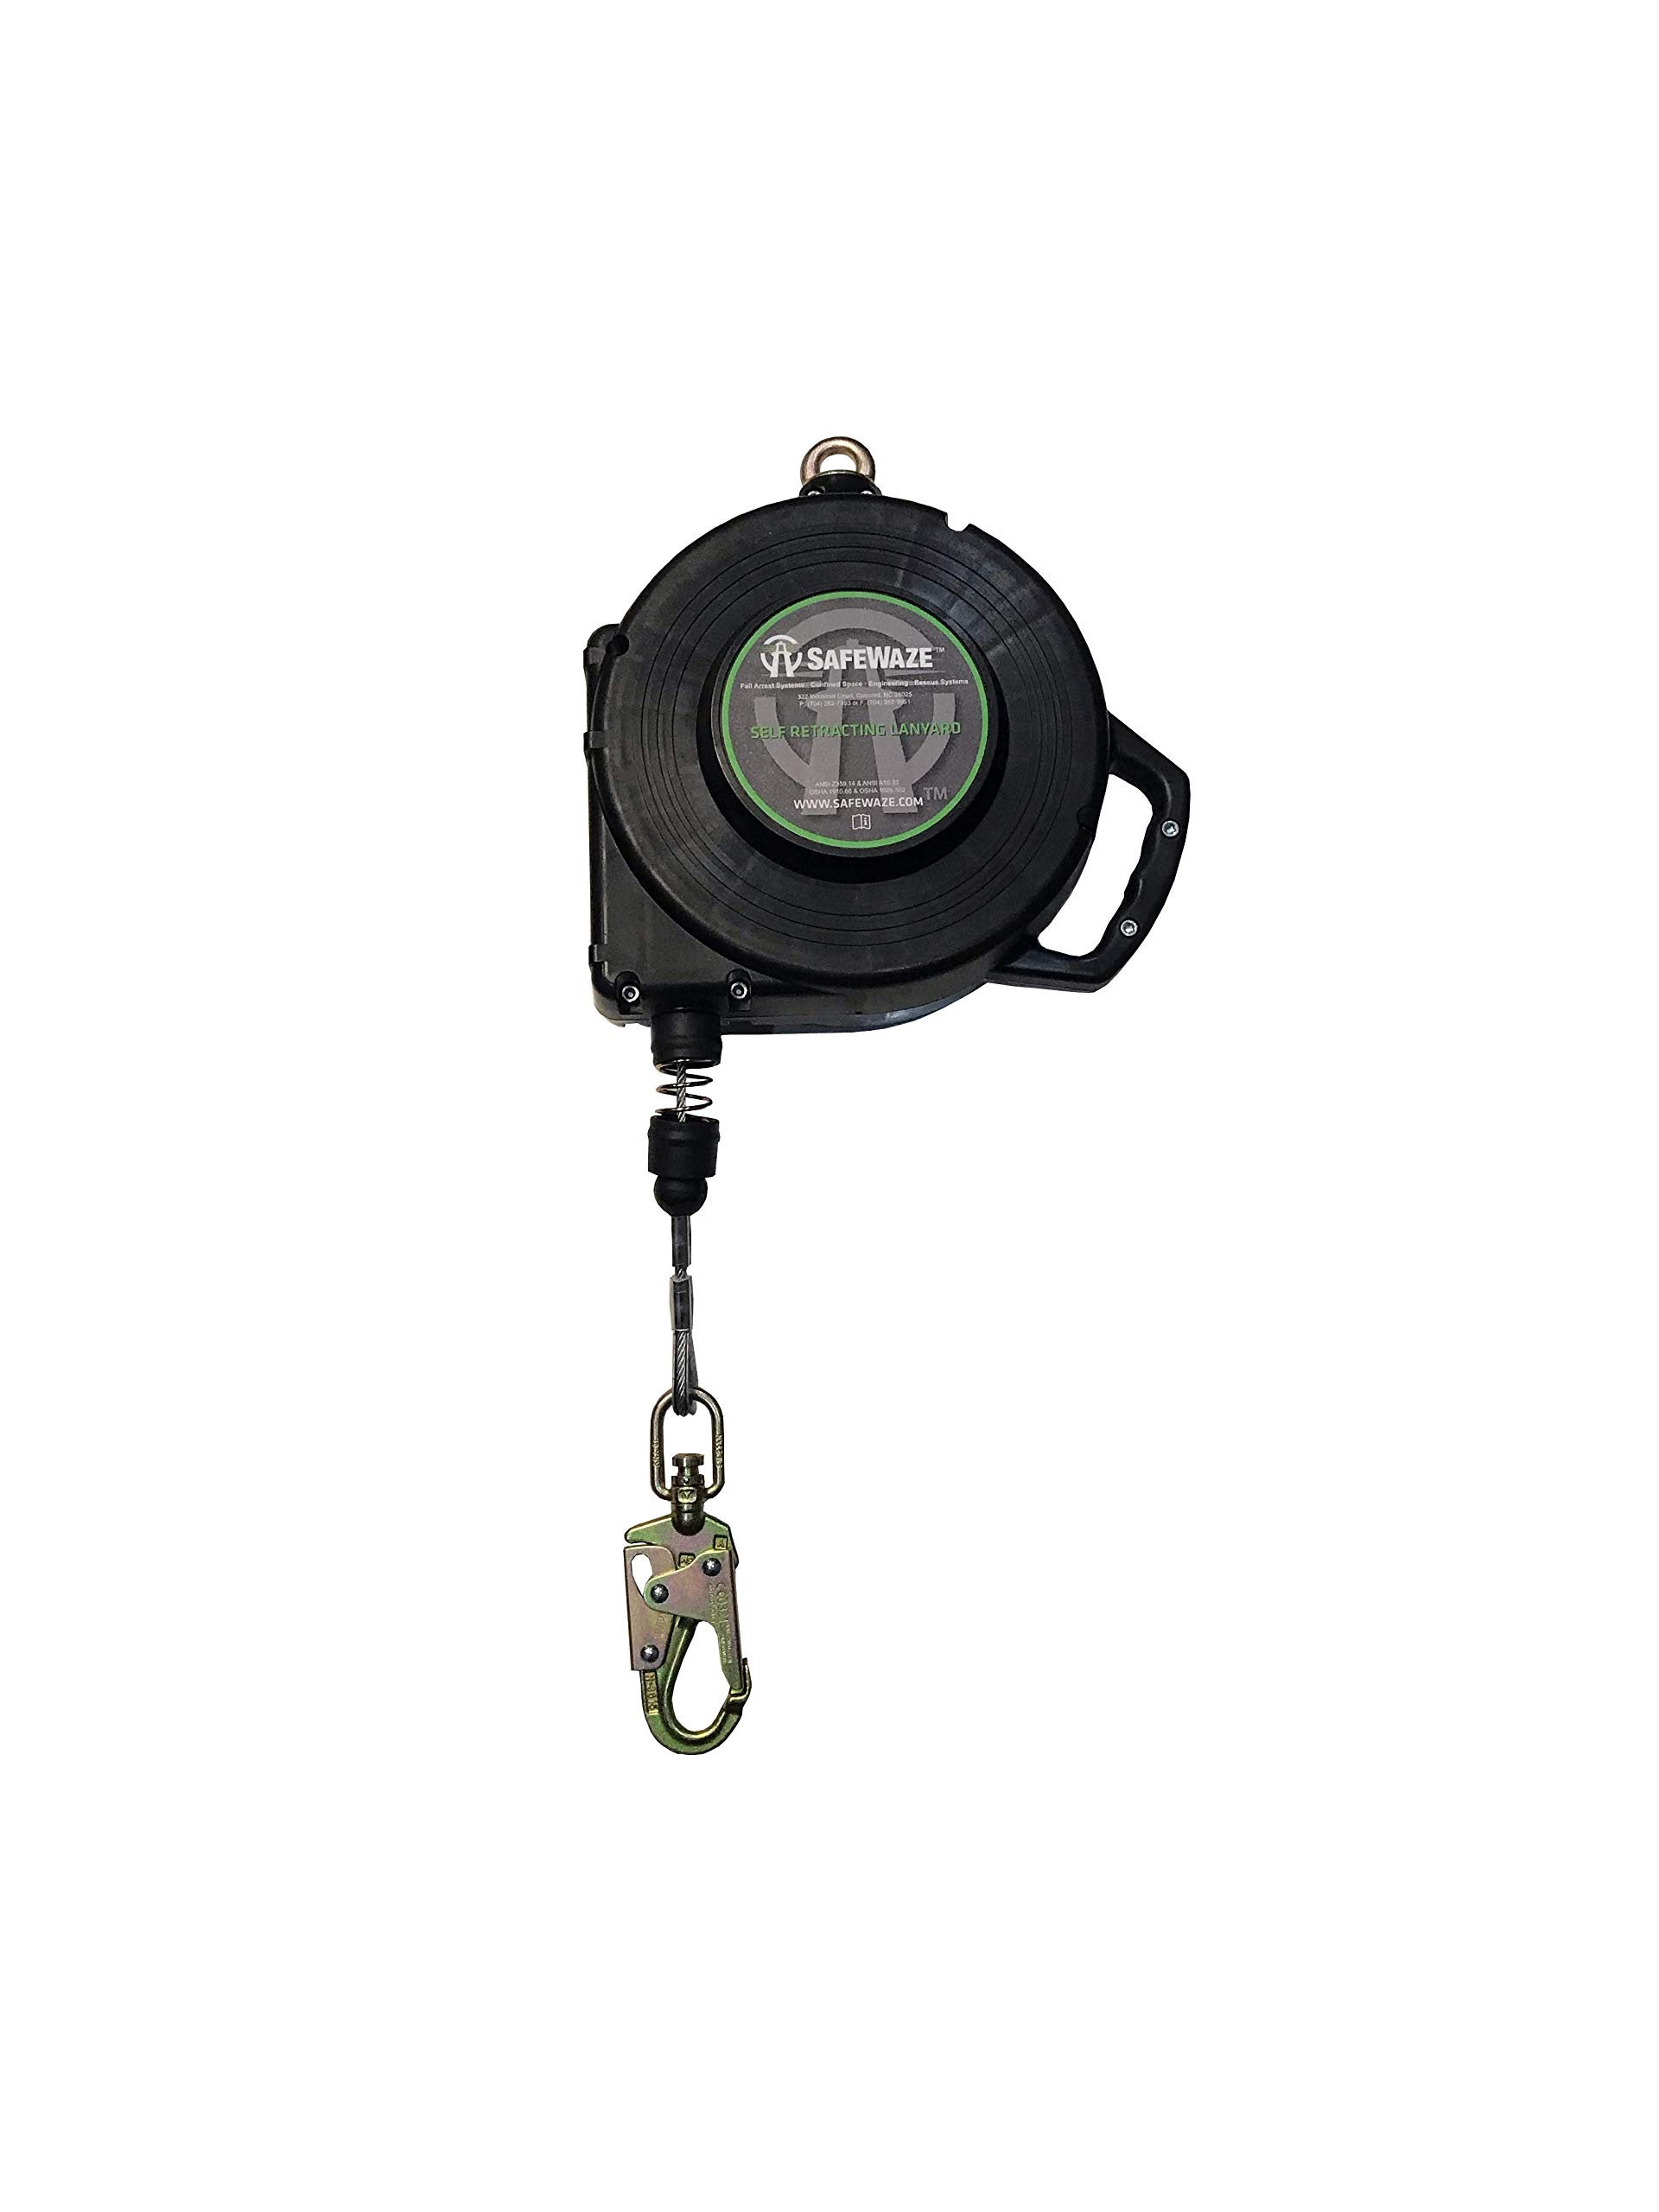 SafeWaze 65' Cable Retractable Lifeline with Locking Snap Hook, Single Person Fall Protection Device, OSHA/ANSI Compliant (FS-EX1065-G)